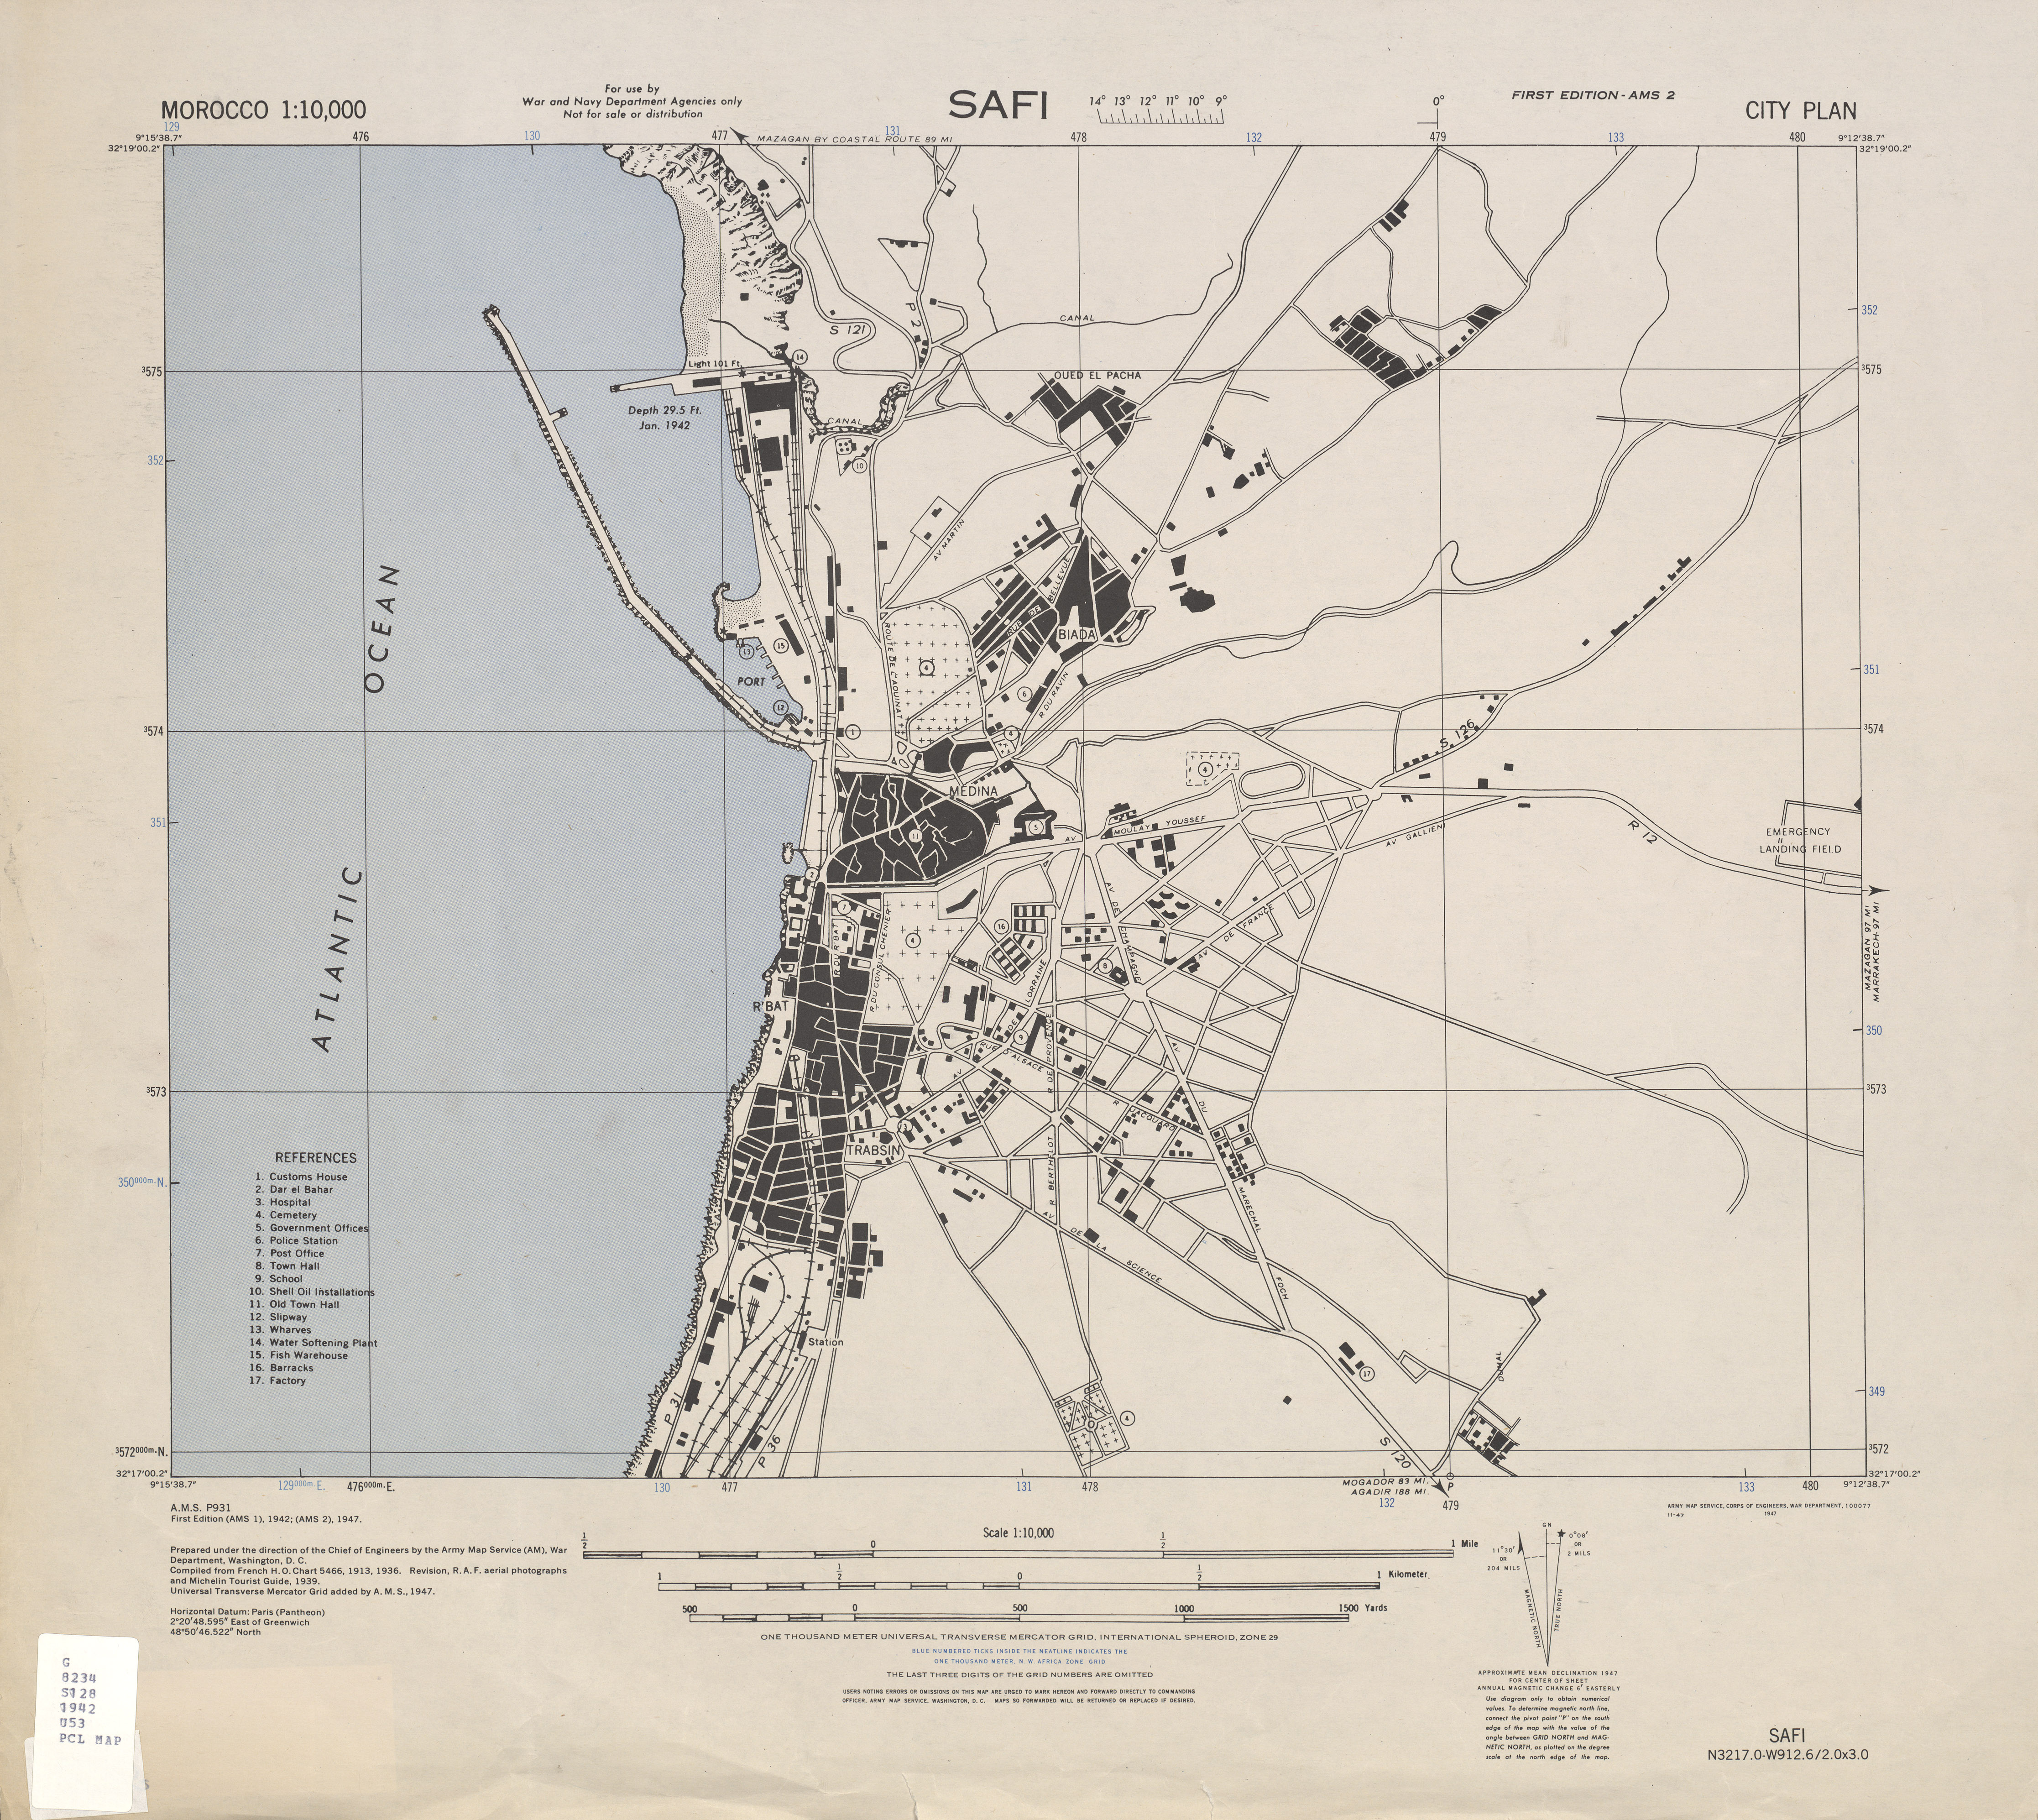 Safi City Map, Morocco 1947